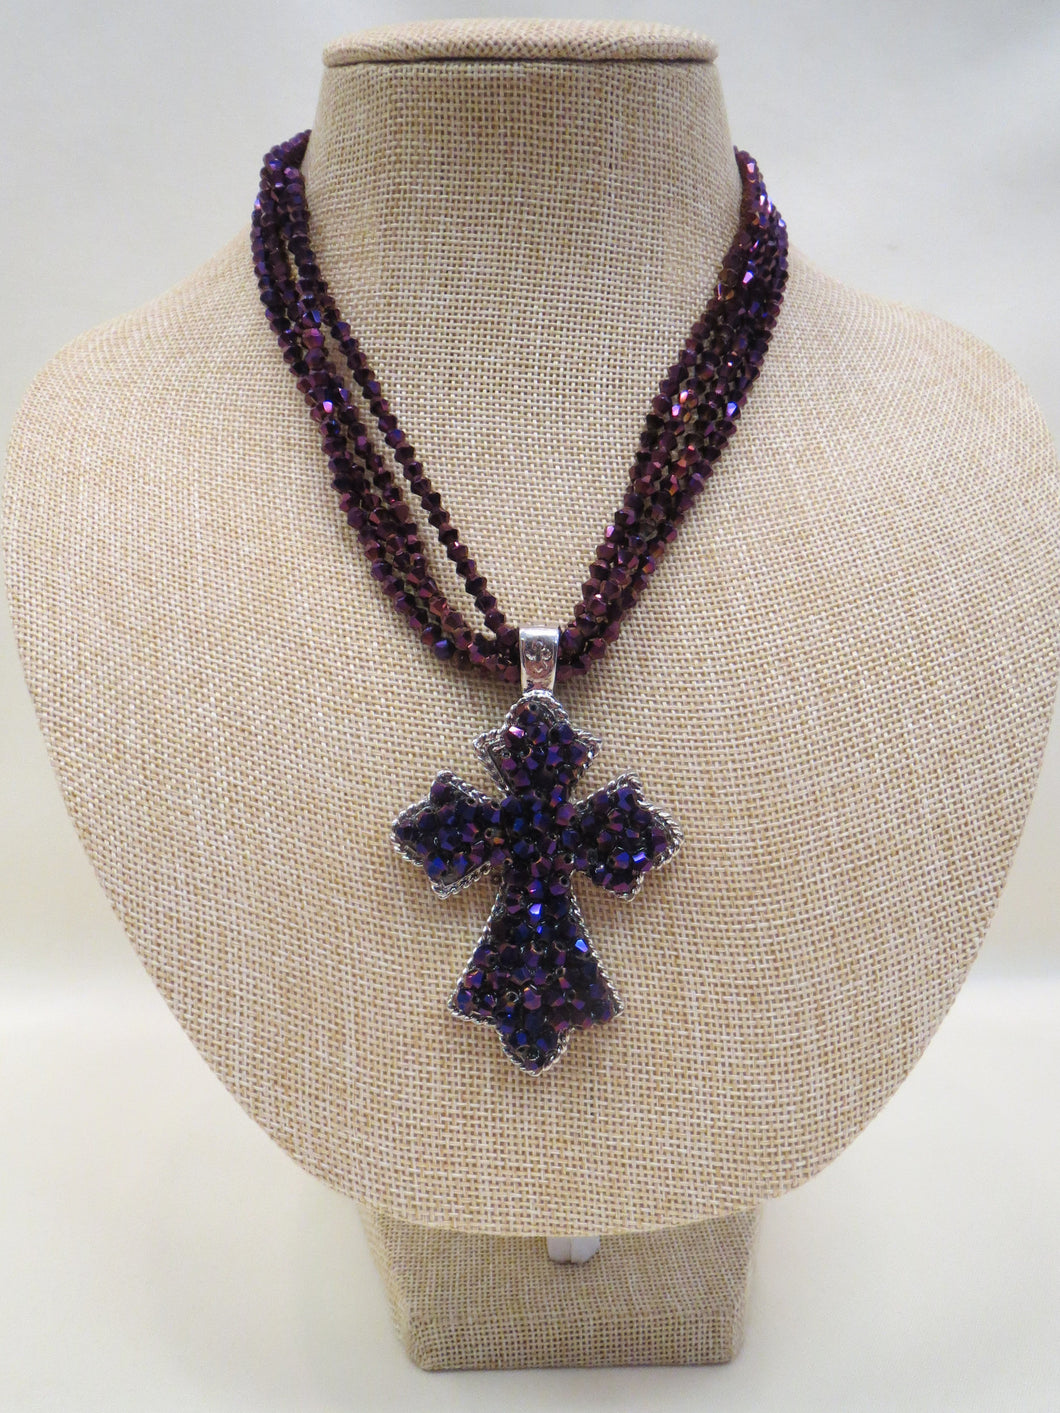 Purple Beaded Necklace w/ Removable Cross Pendant | All Dec'd Out